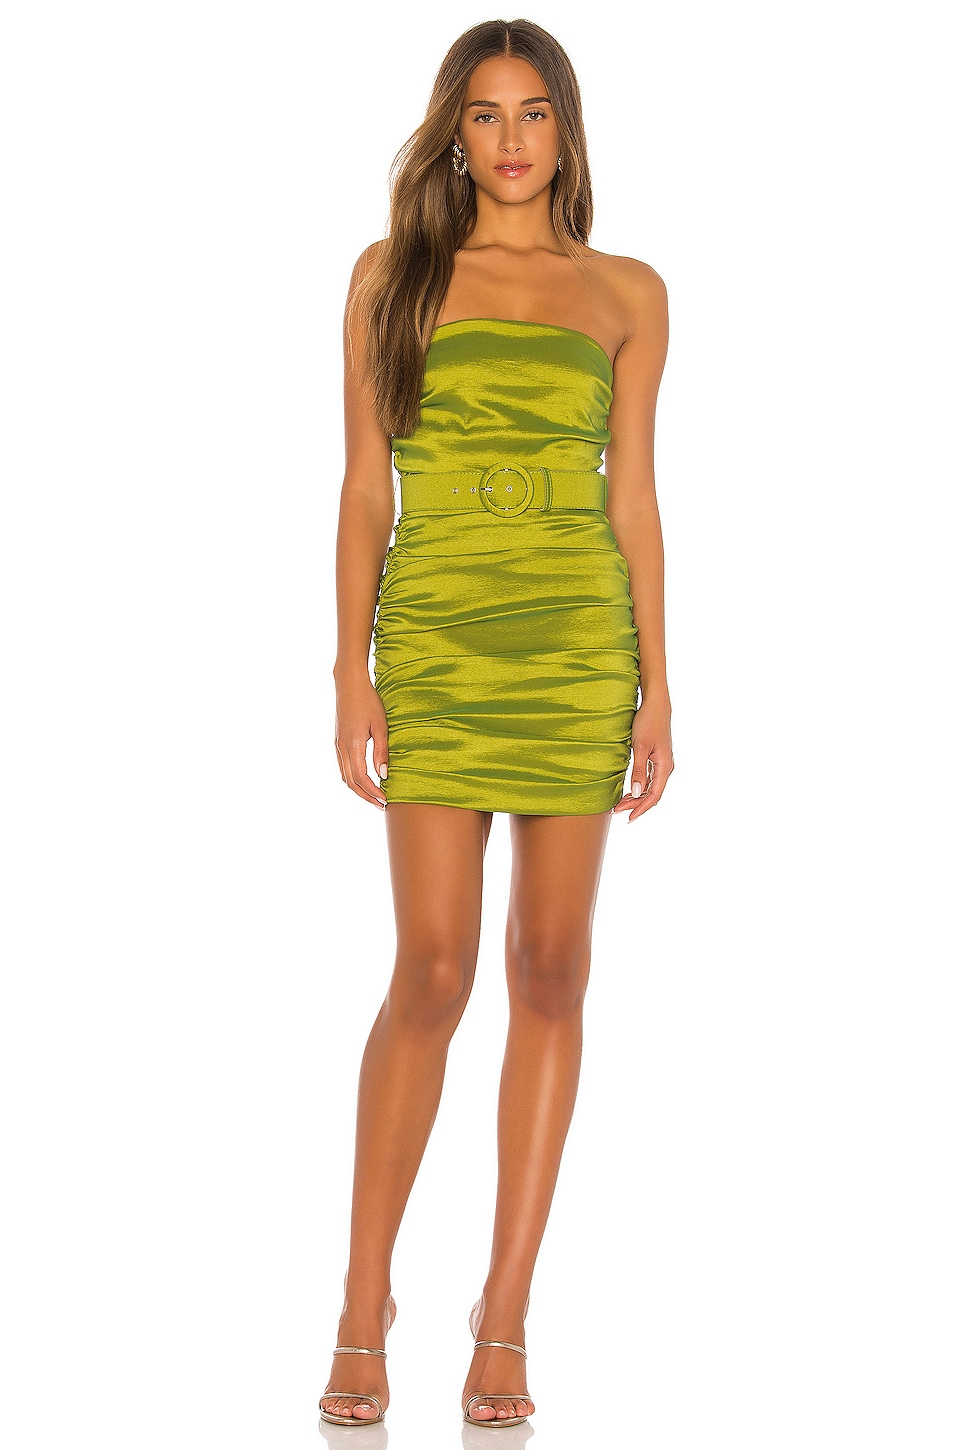 MAJORELLE Kaci Dress in Lime